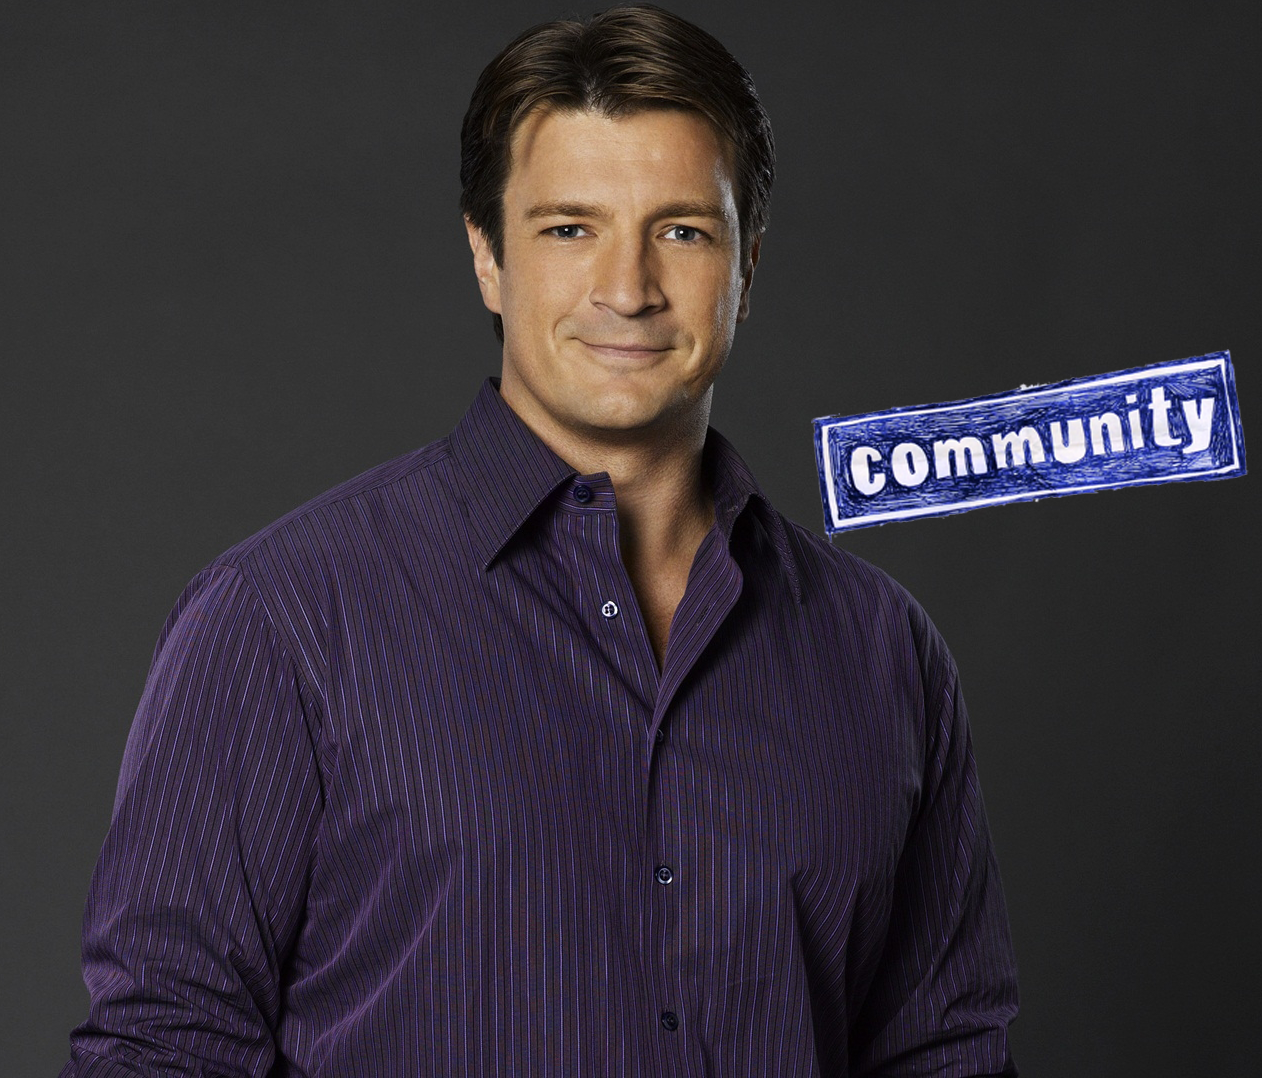 Nathan Fillion Community